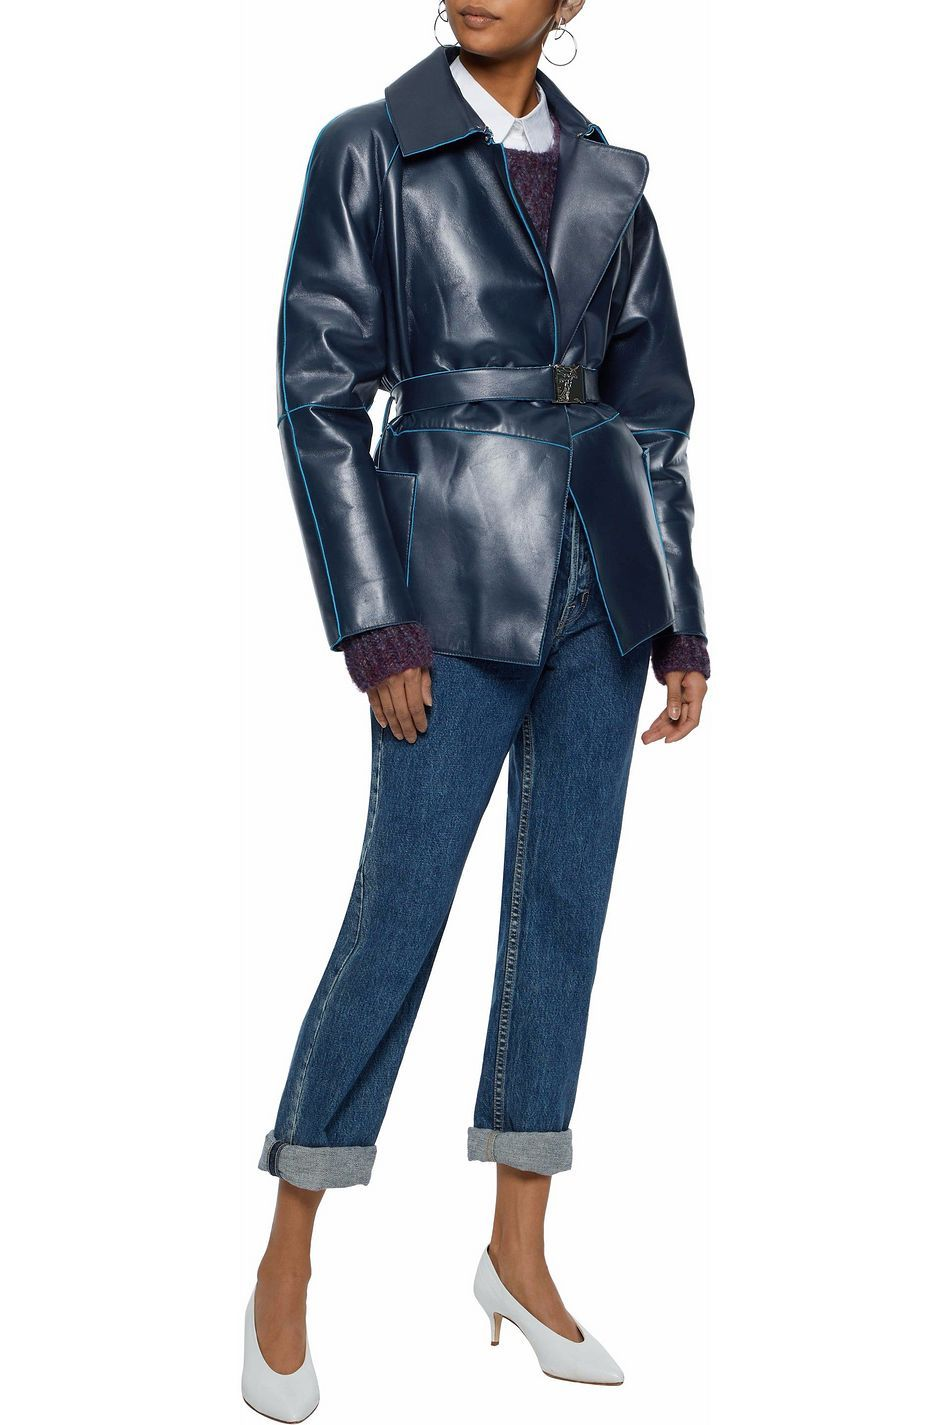 Midnight Blue Belted Leather Jacket Sale Up To 70 Off The Outnet Versace Collection The Outnet Leather Jackets For Sale Leather Jacket Jackets [ 1425 x 950 Pixel ]